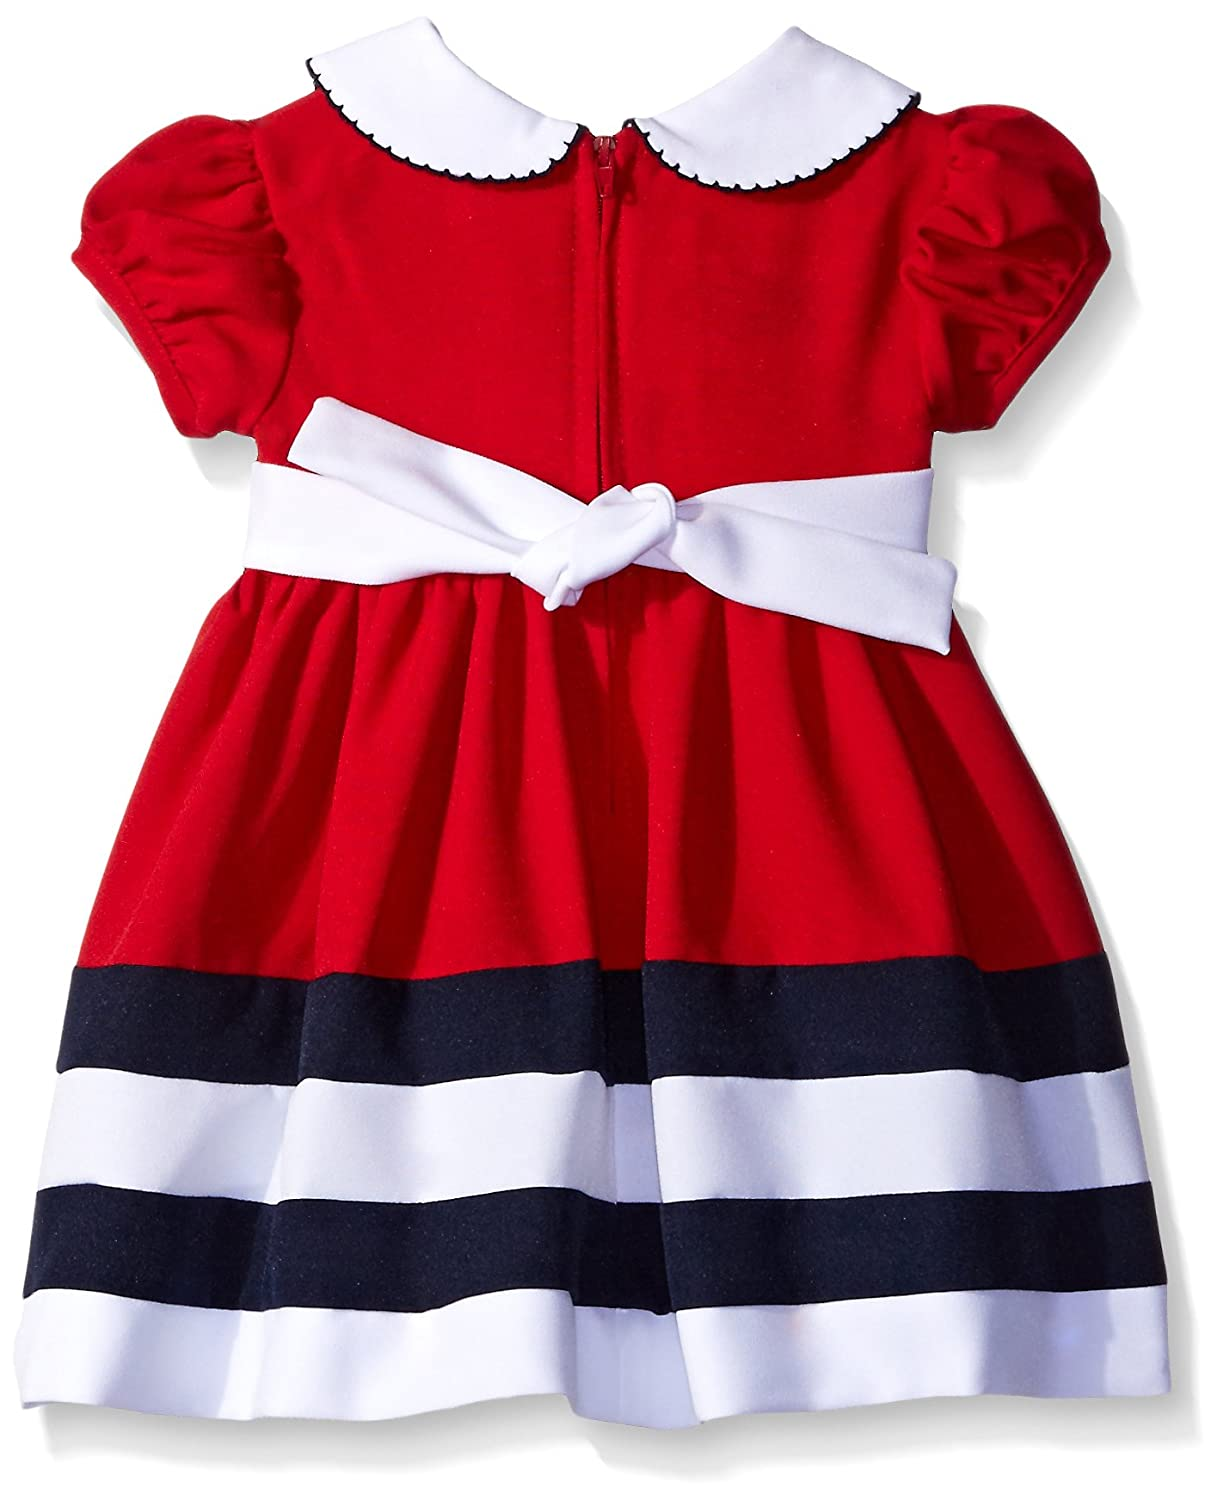 6d9bcbb59d8 Amazon.com  Bonnie Baby Baby Girls  Peter Pan Collar Nautical Dress and  Panty Set  Clothing